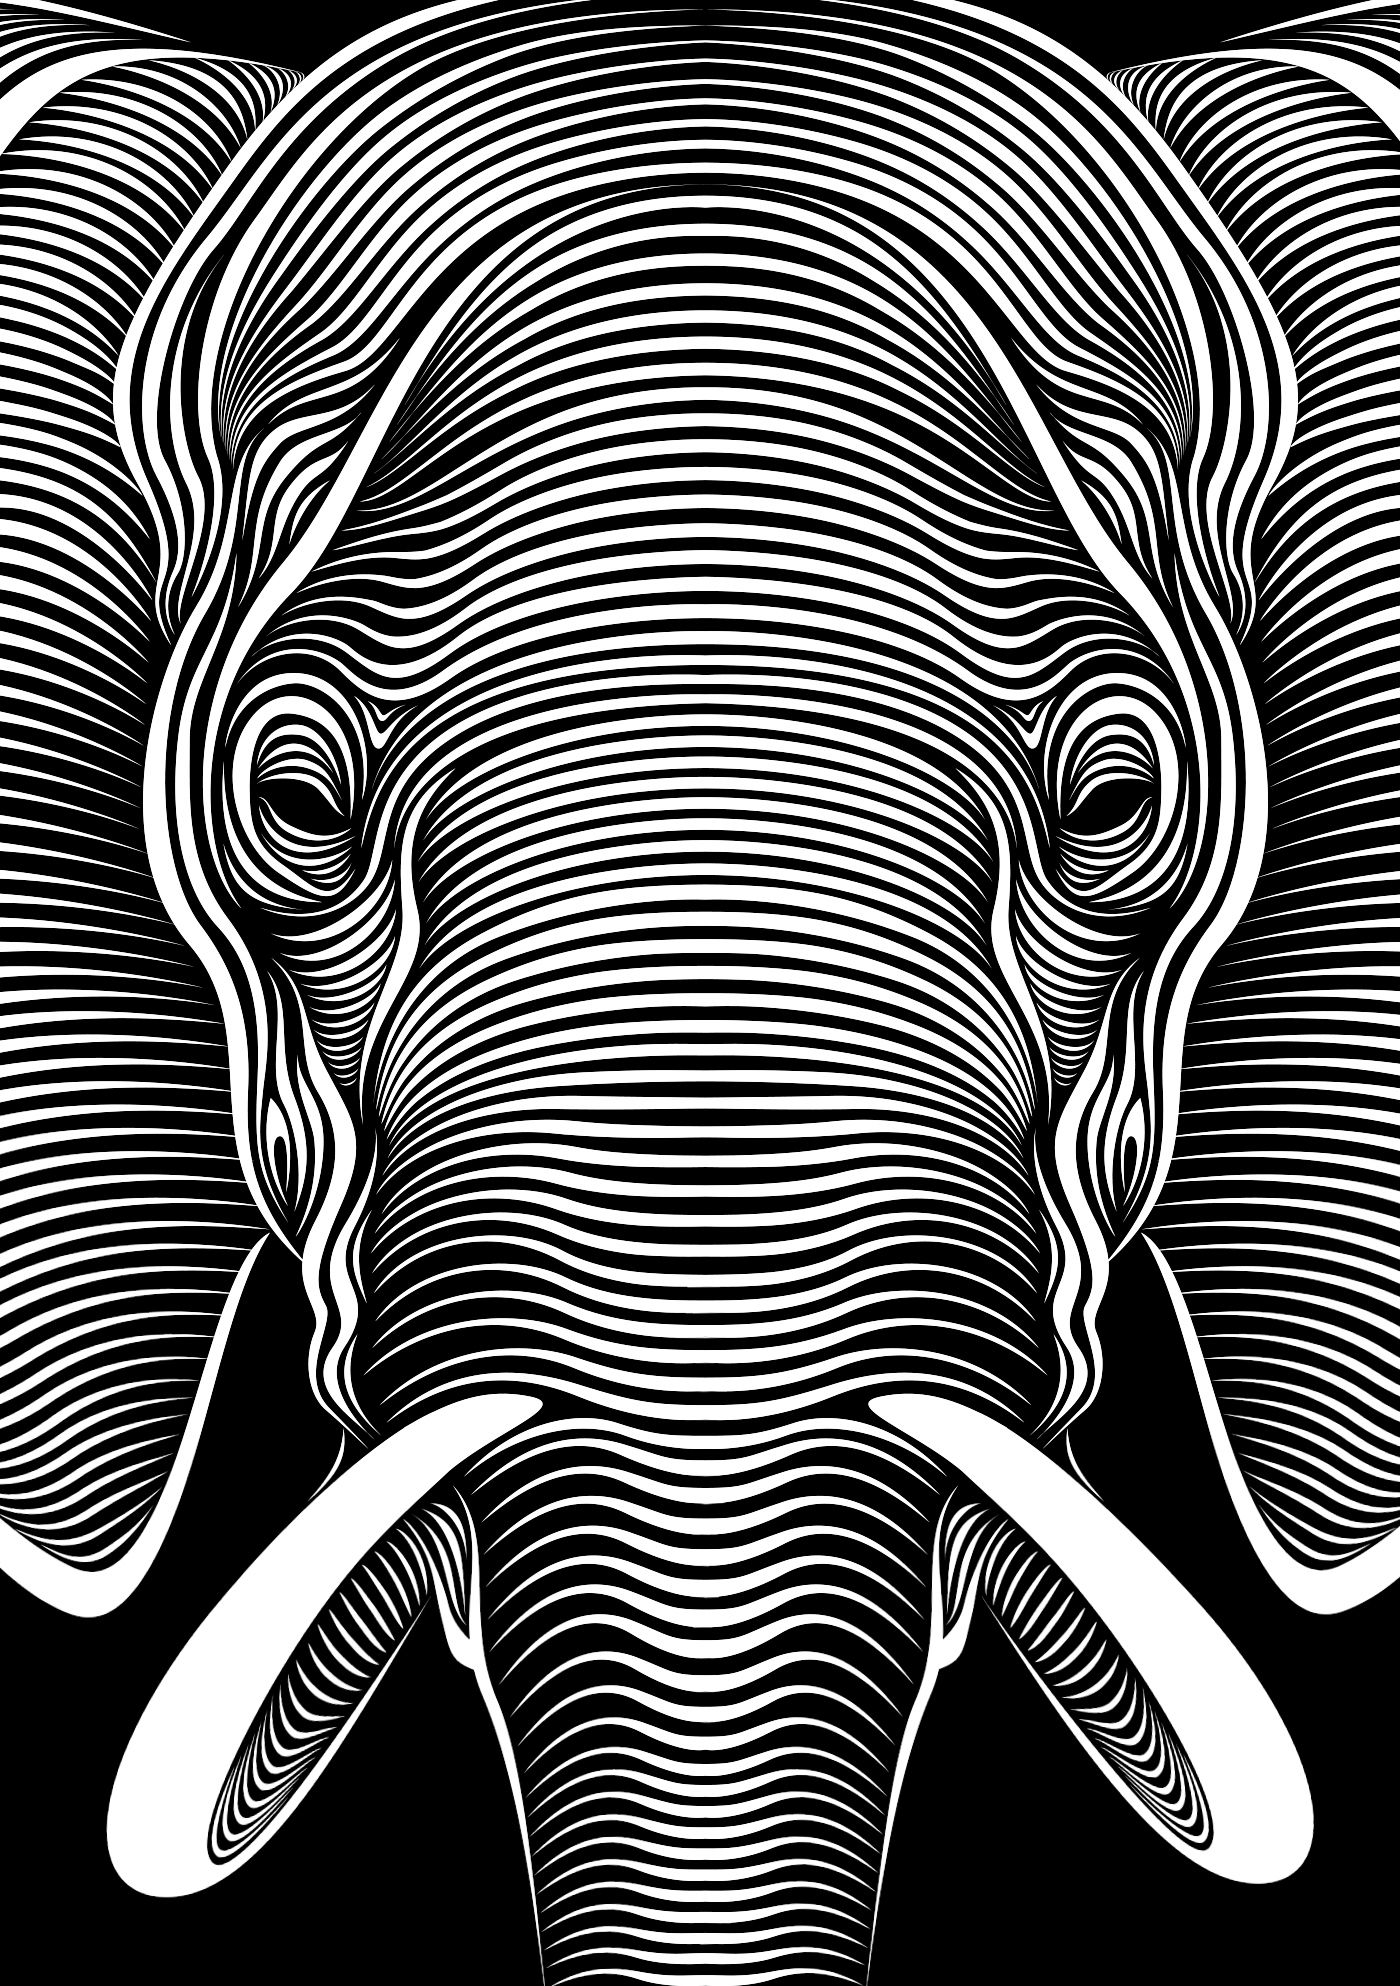 Contour Line Drawing Elephant : Elephant faces lll by patrick seymour on behance adult